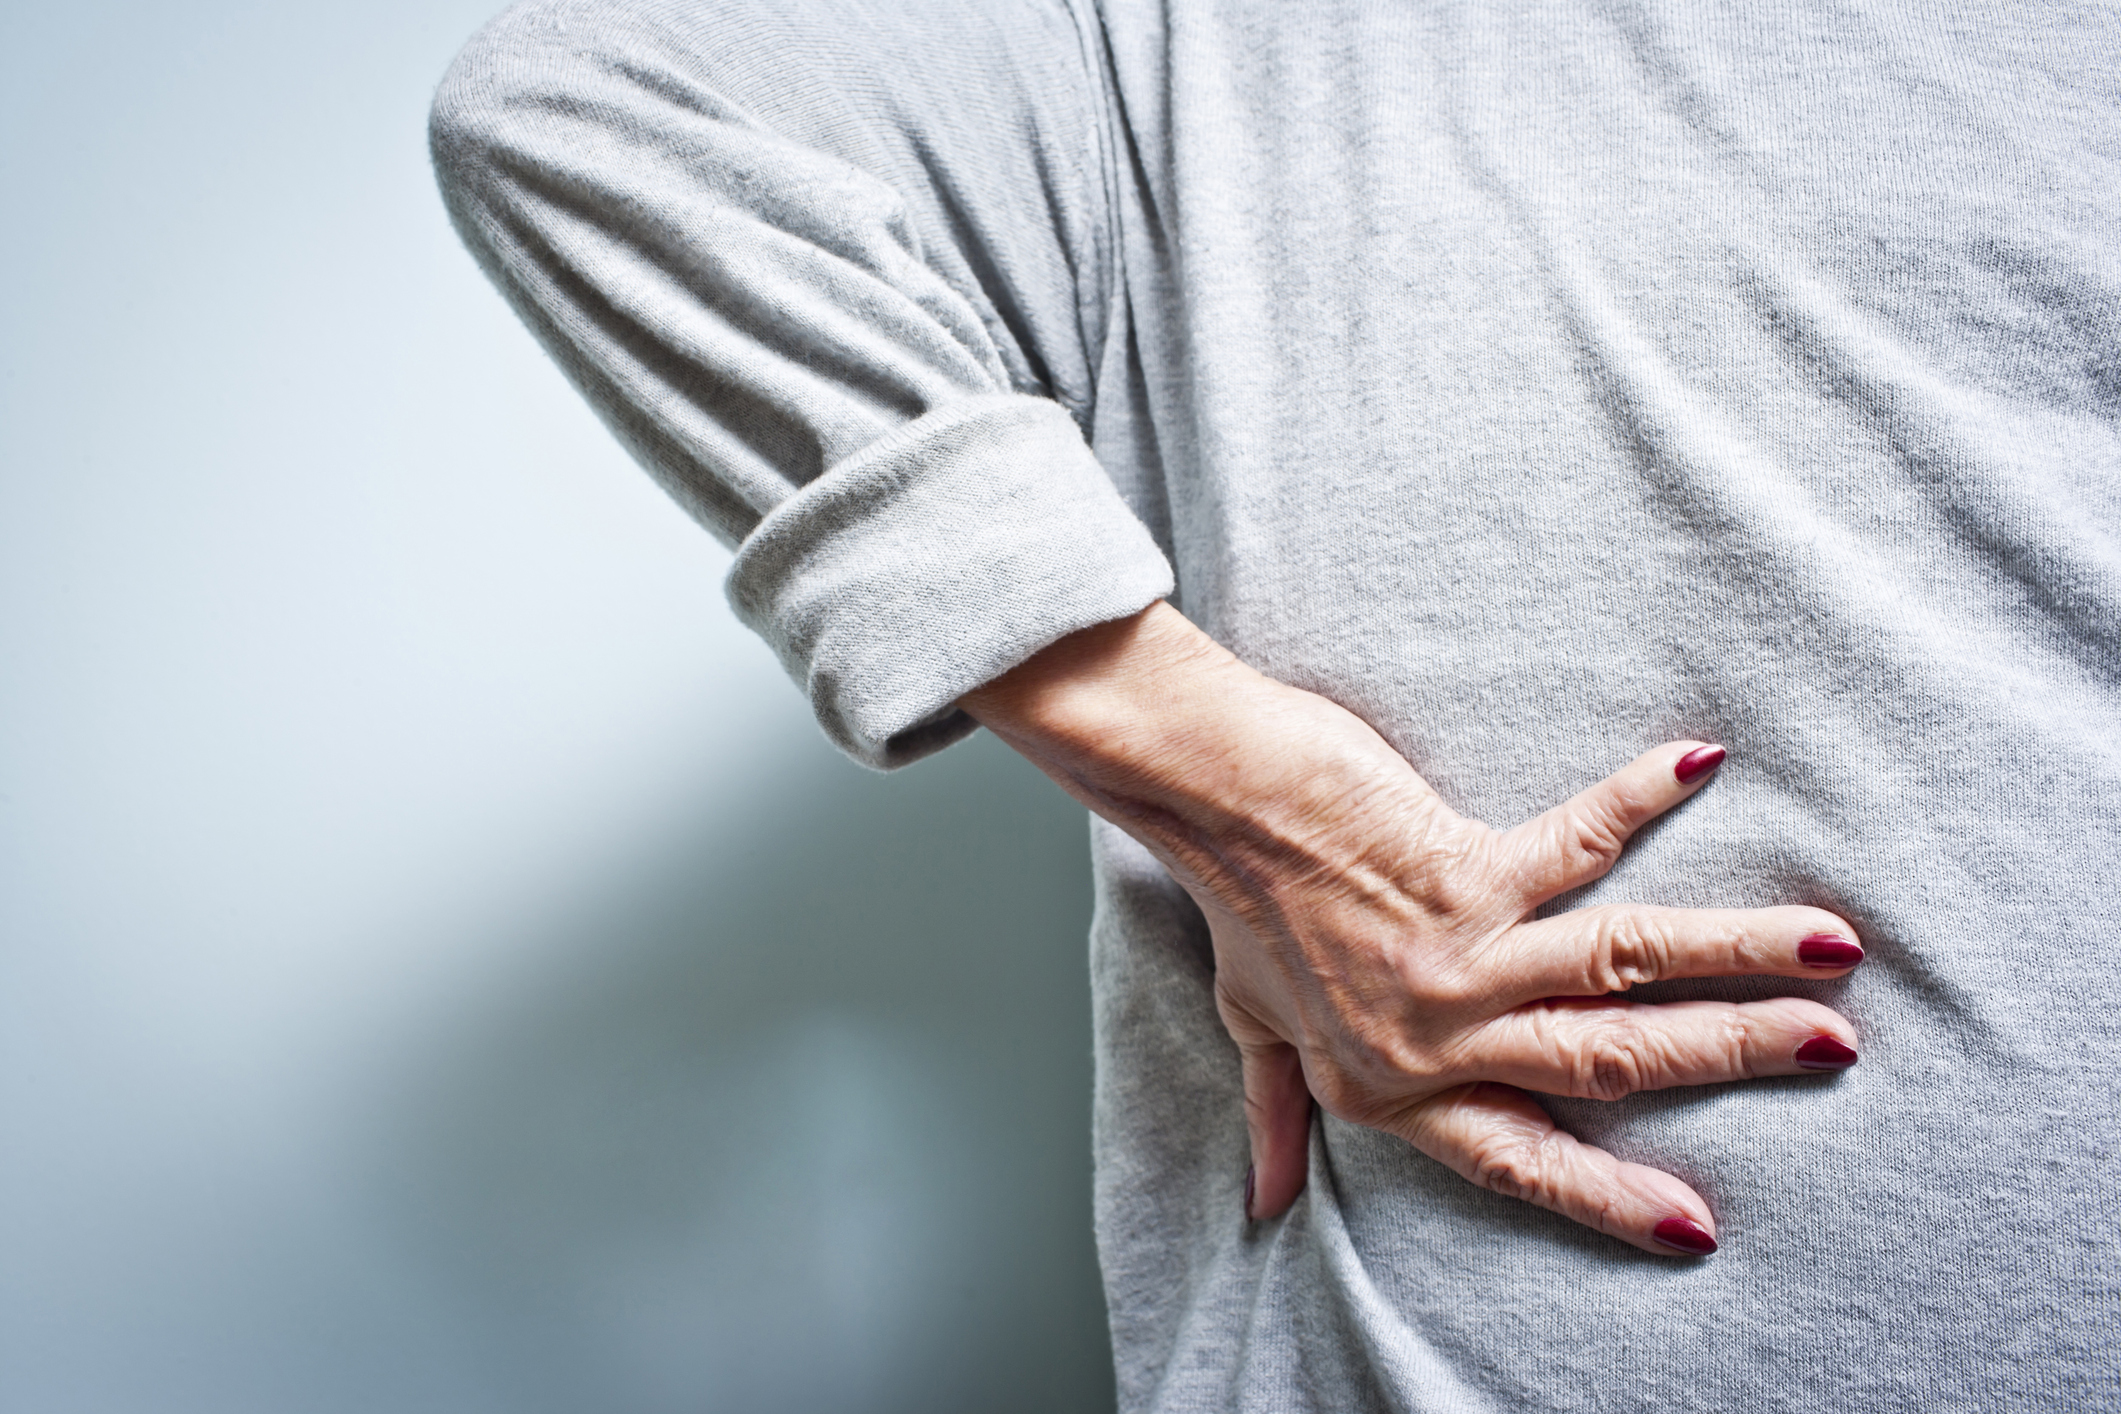 Spine specialist in NJ – Medical Experts Who Treat Back Pain